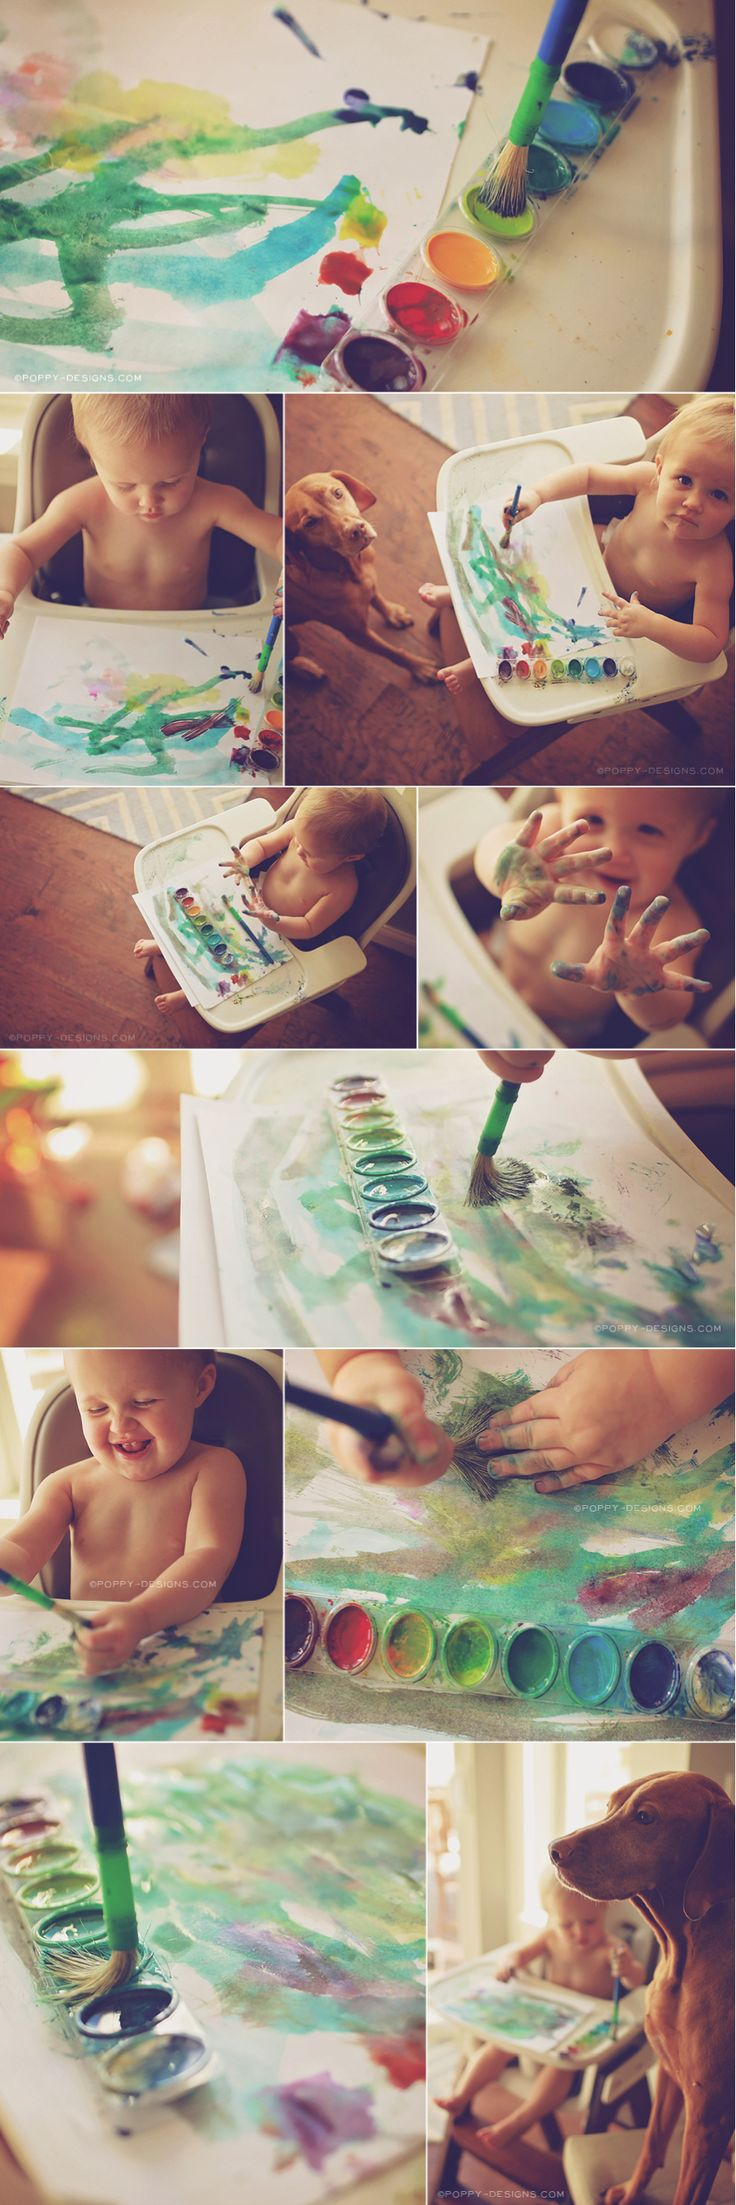 WATERCOLOR / Lifestyle Photography / Art /Child - capturing an everyday moment with genuine reactions